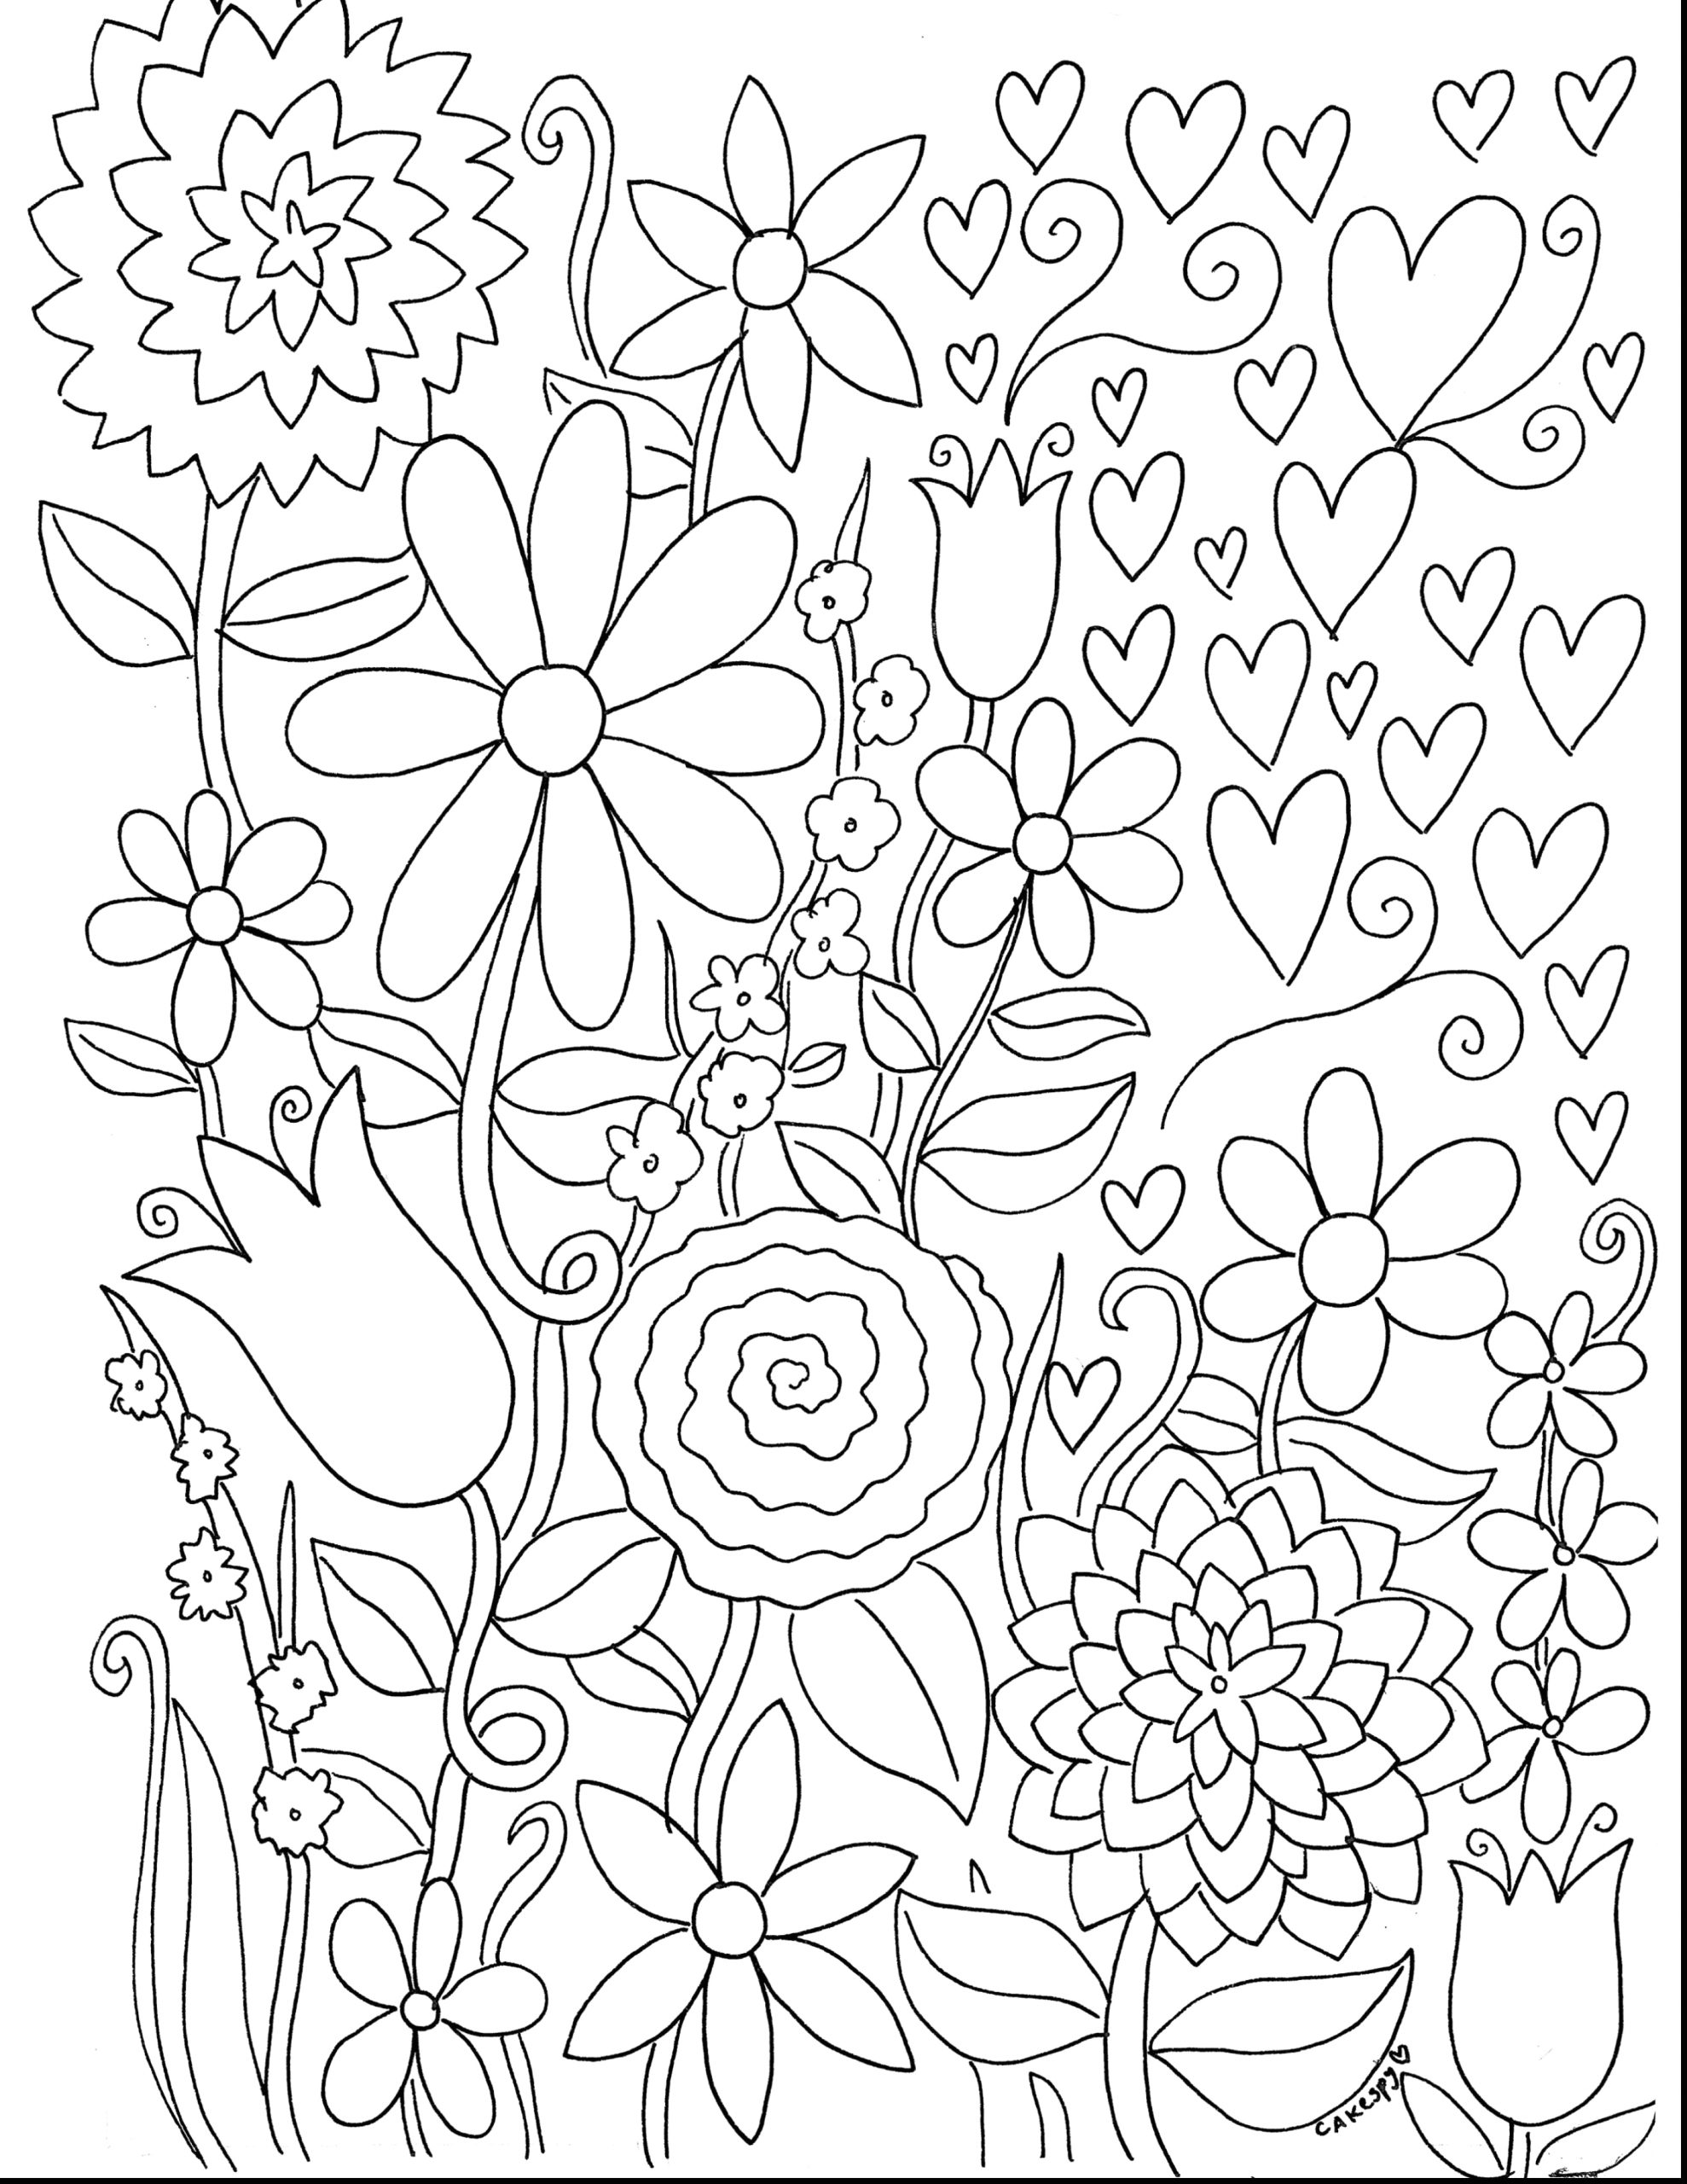 Make Your Own Coloring Pages for Free Design Your Own Coloring Pages at Getcolorings